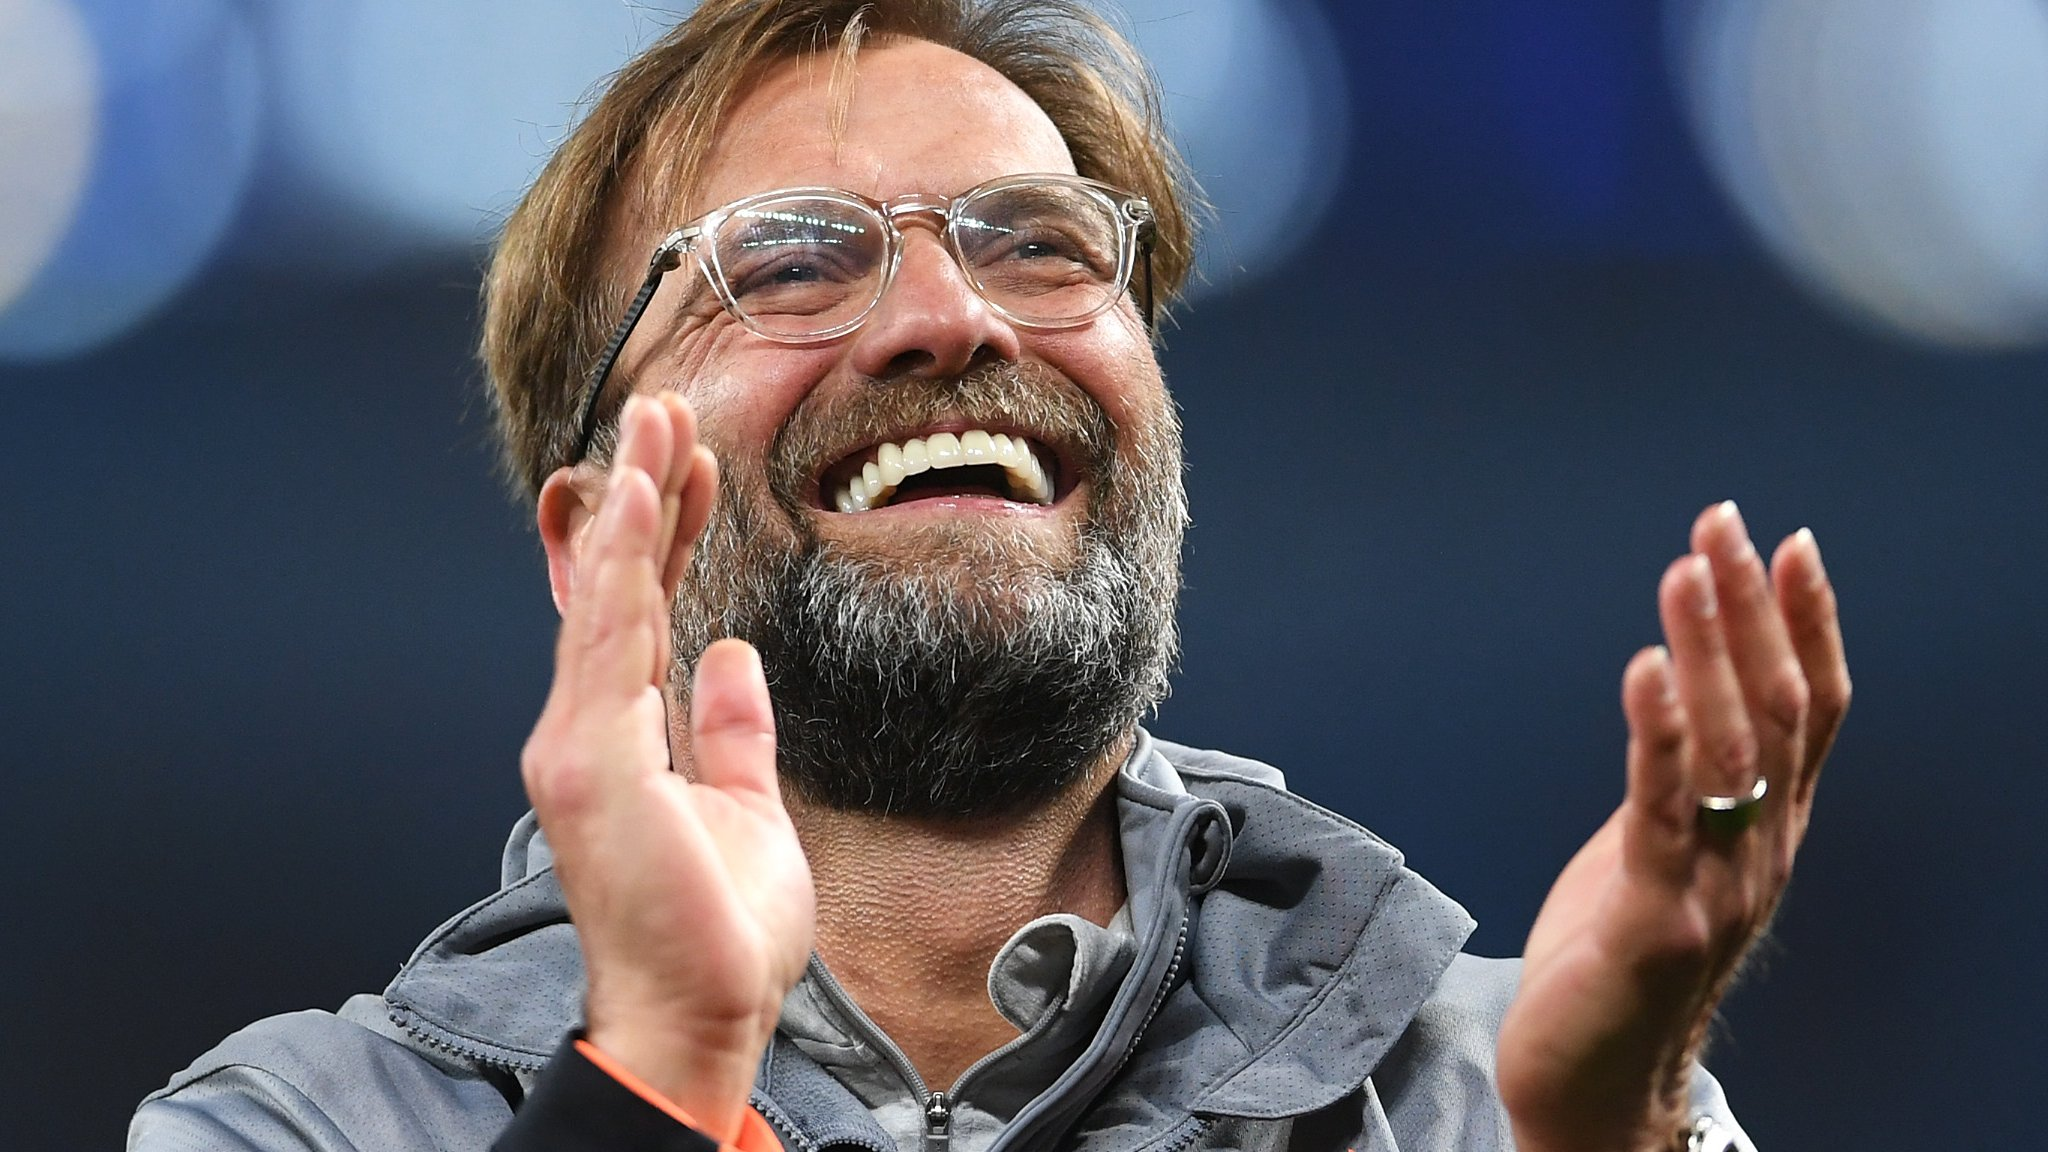 Real Madrid v Liverpool: Jurgen Klopp prepares for Champions League final